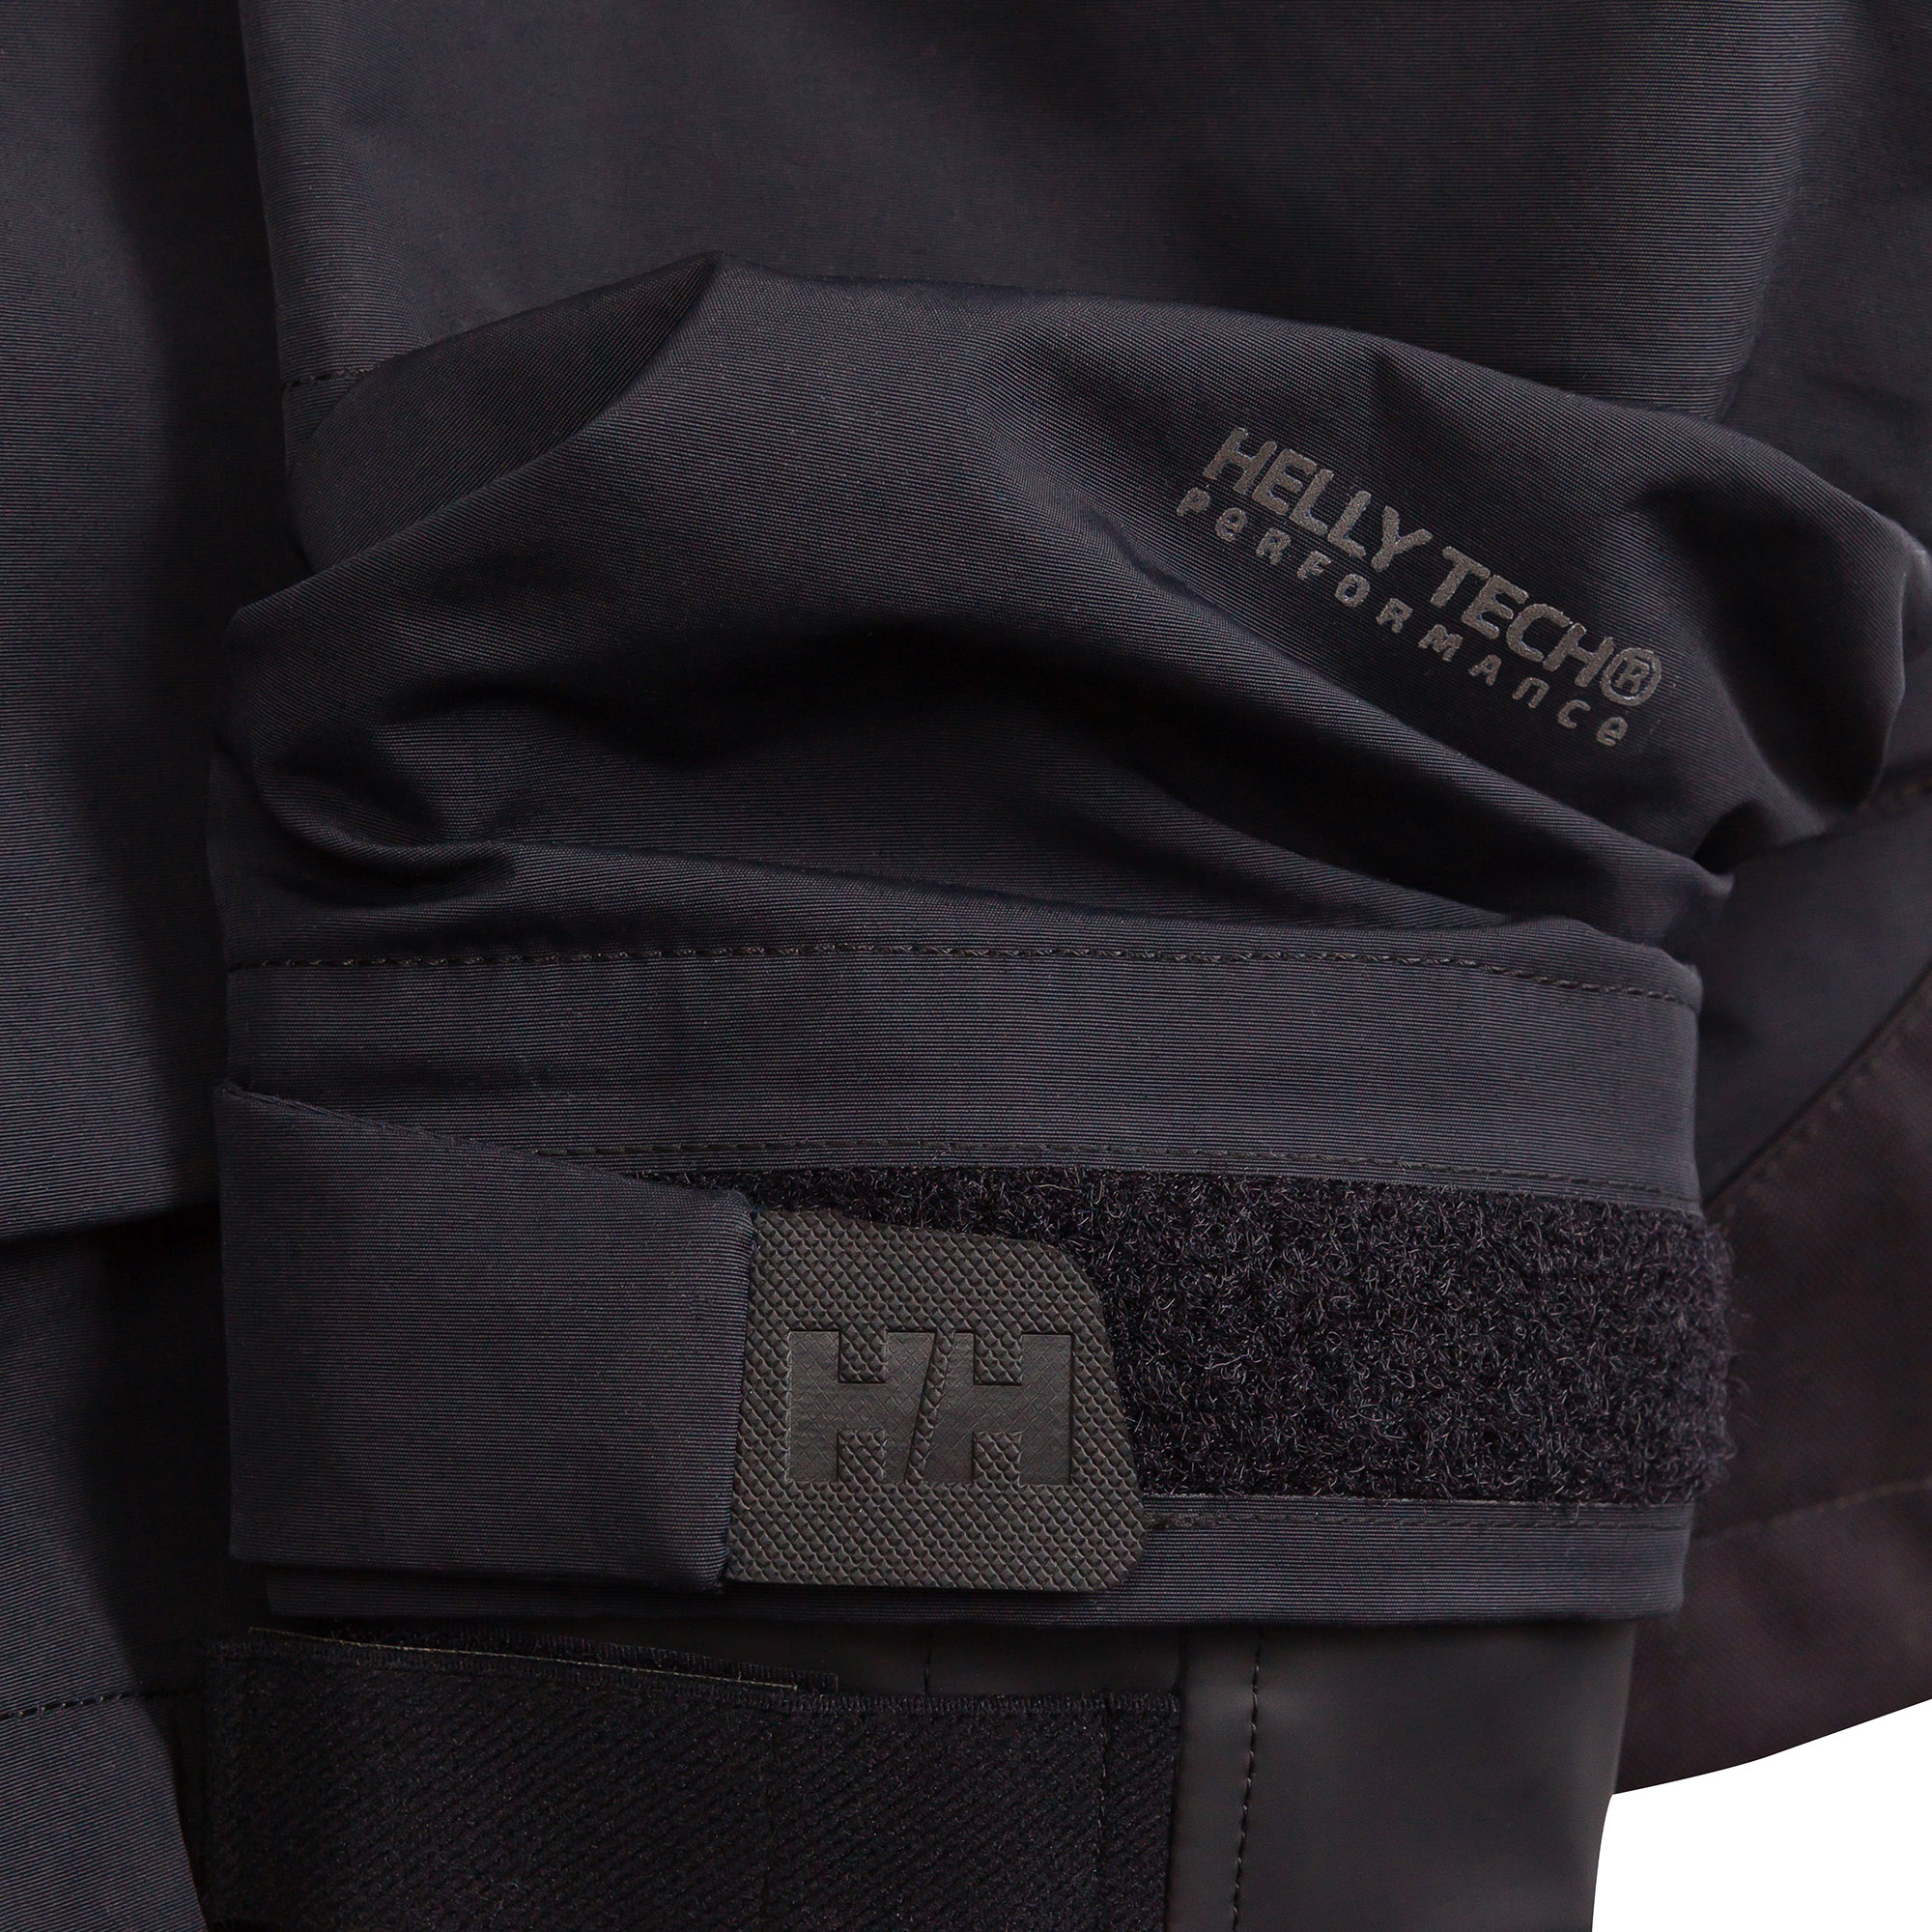 HELLY HANSEN X FUTUR - JACKET - DETAIL 2